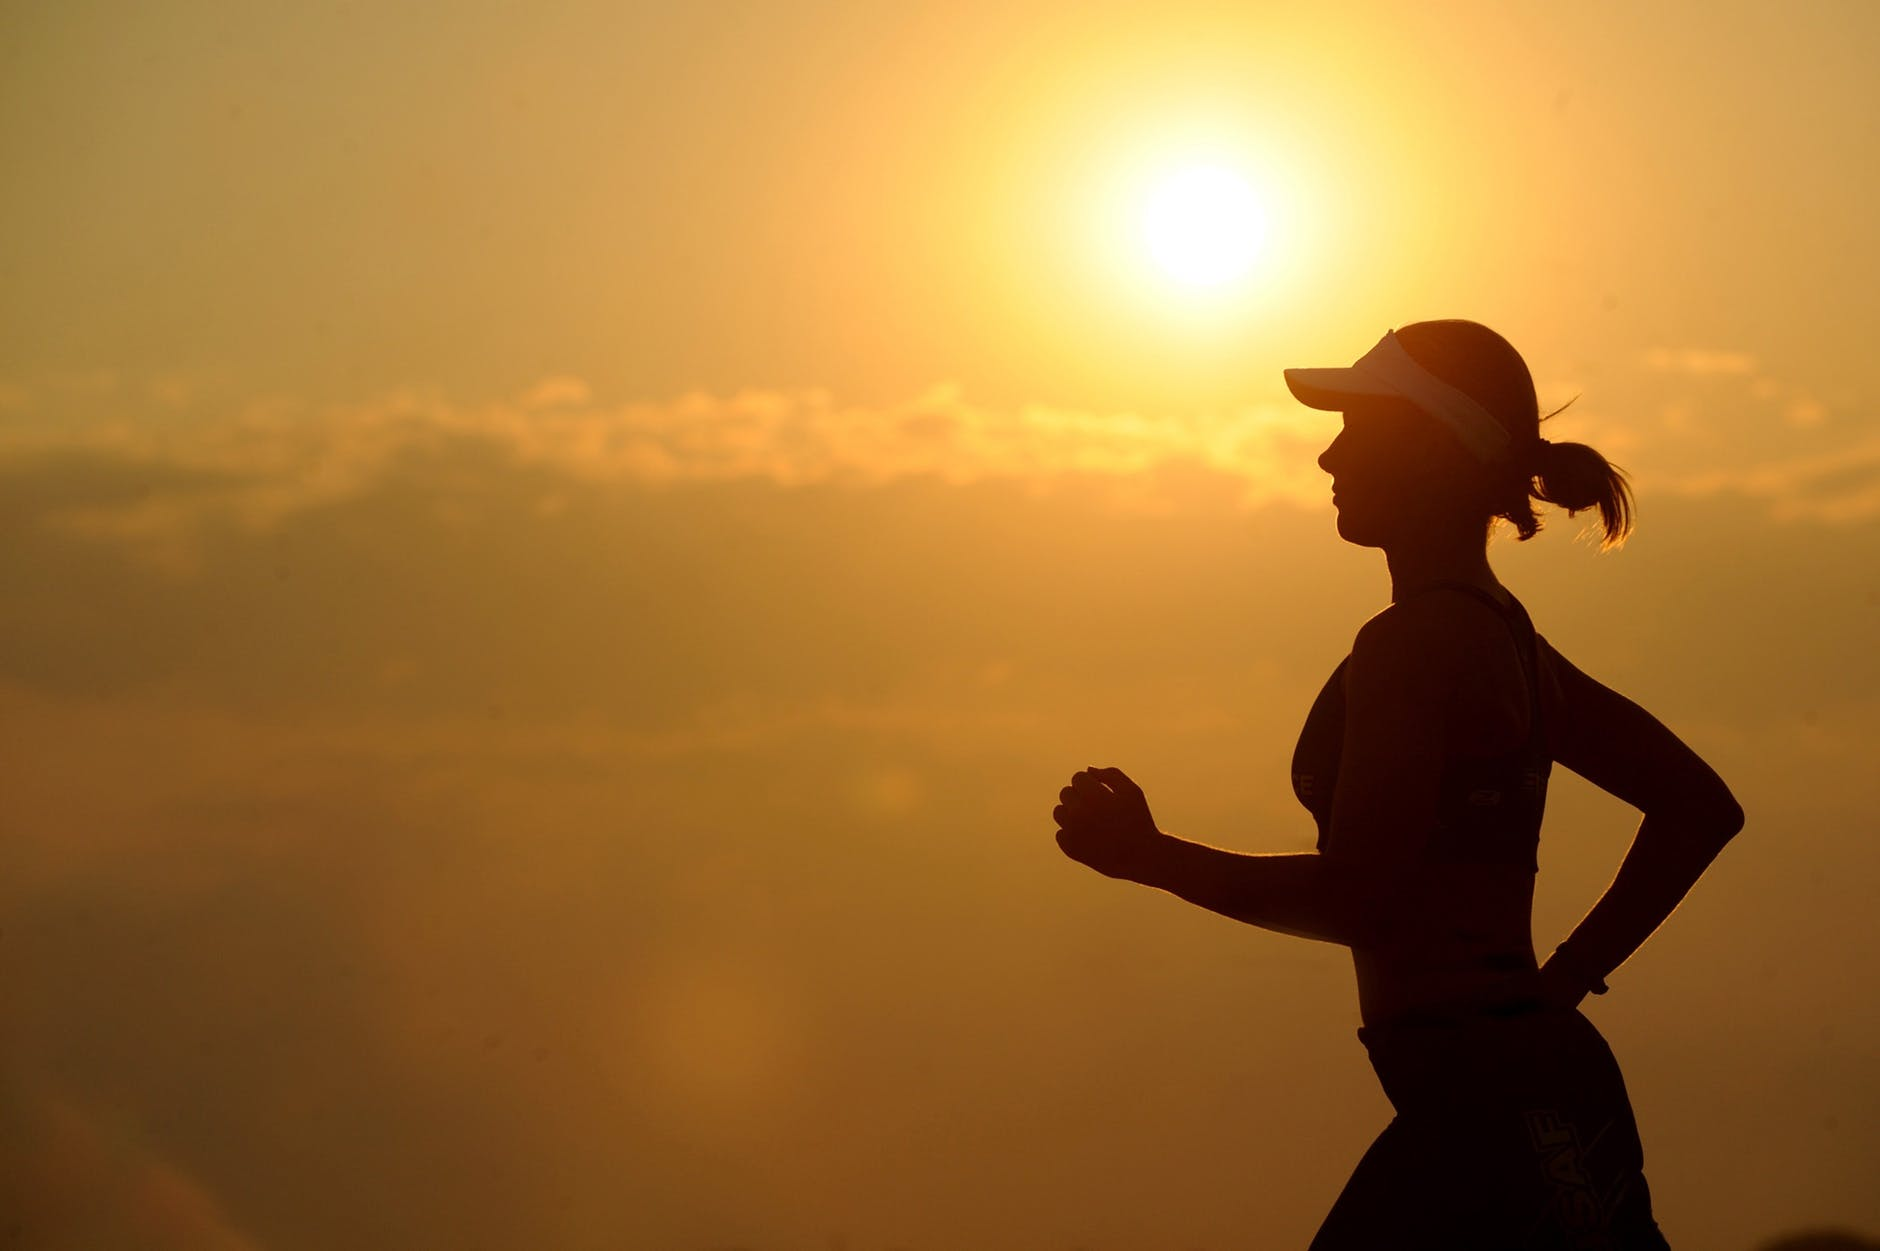 Woman's silhouette running against the sunrise